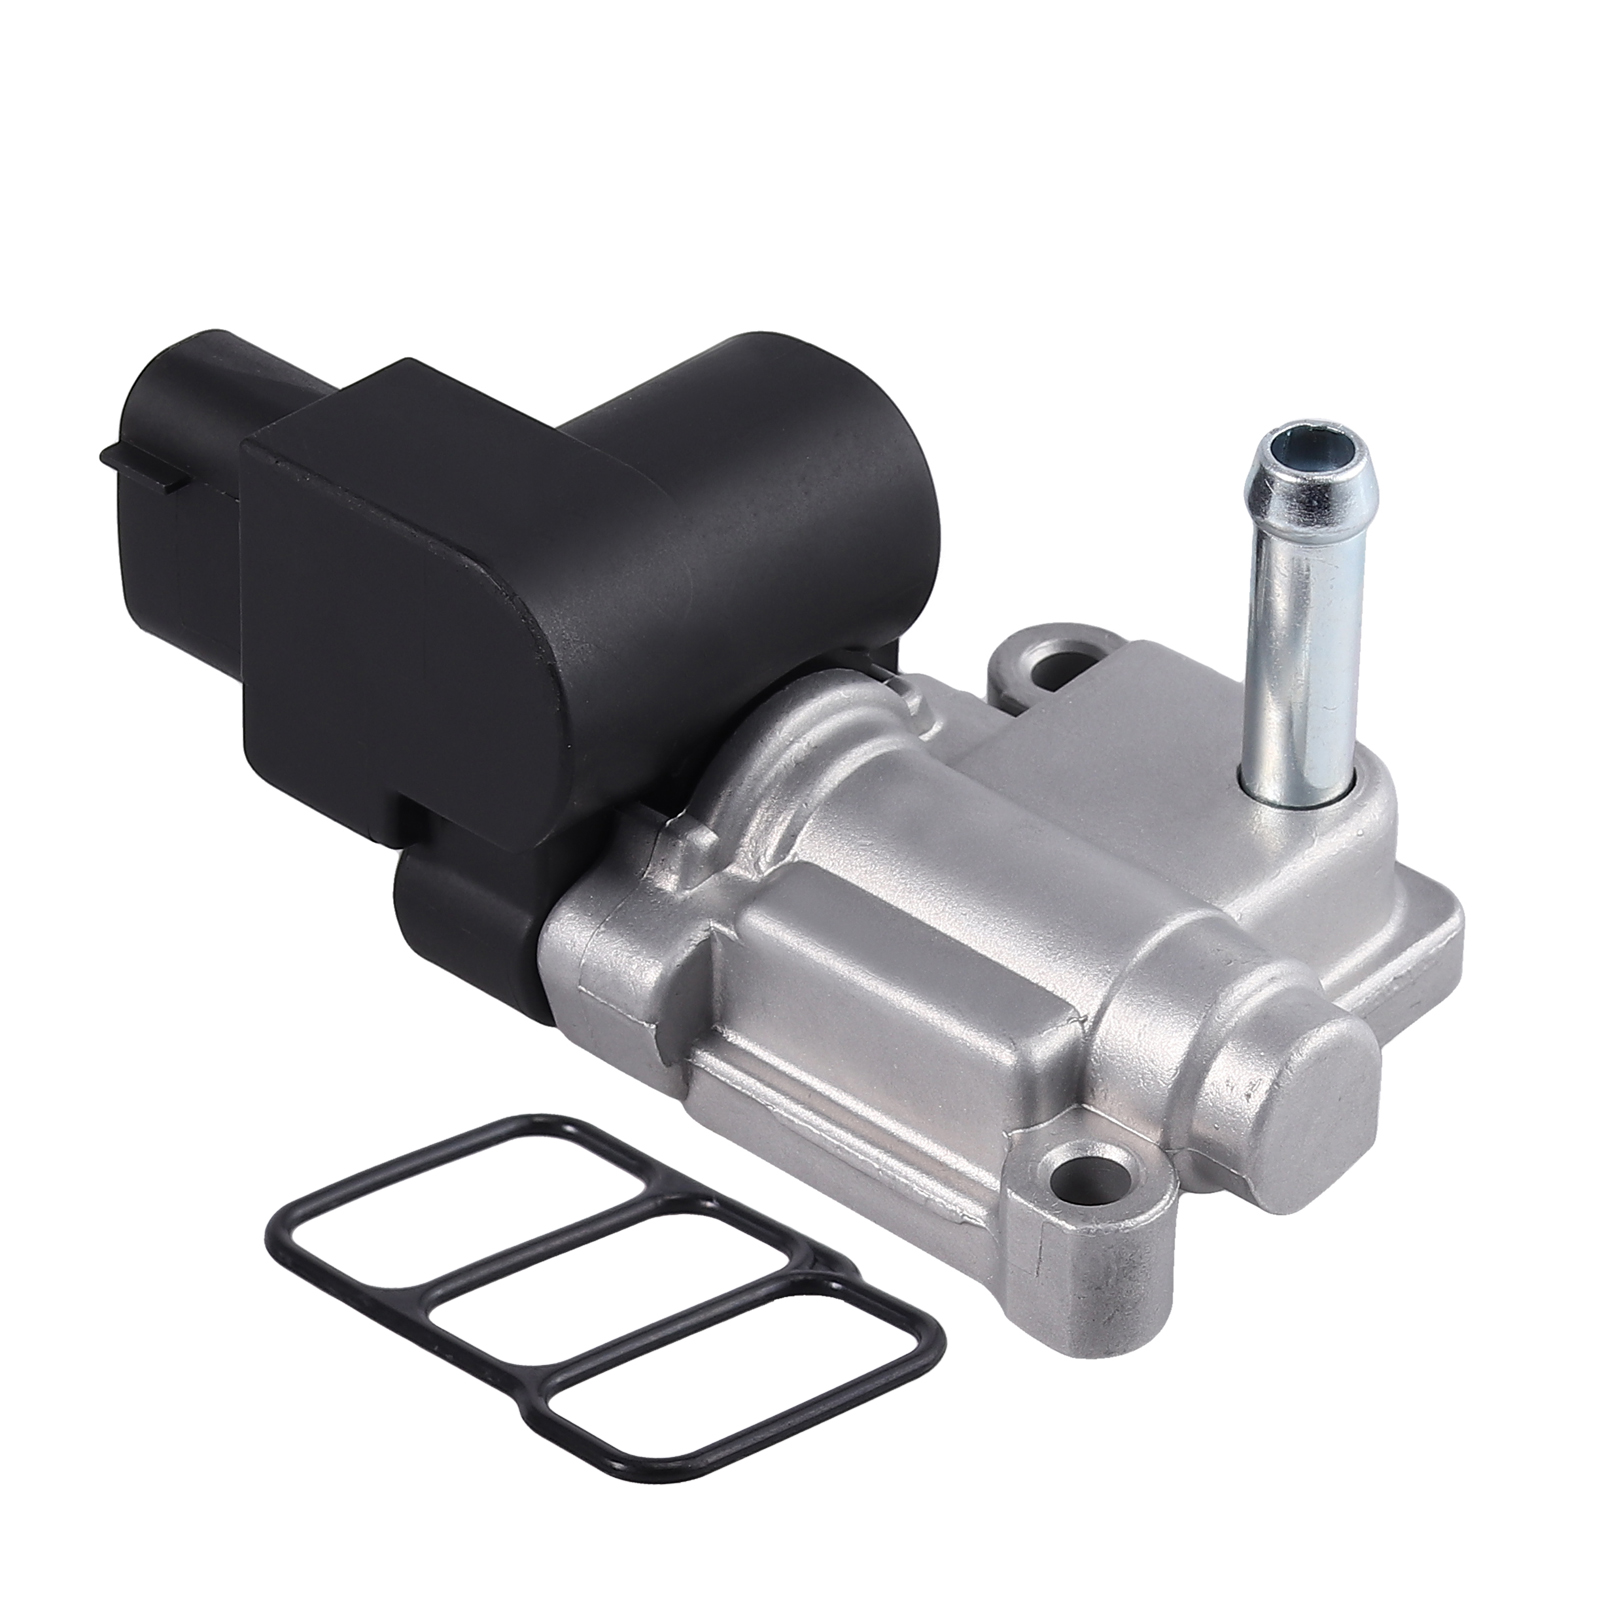 16022-P8A-A03 Idle Air Control Valve FOR Acura CL MDX TL Honda CR-V Pilot IN USA